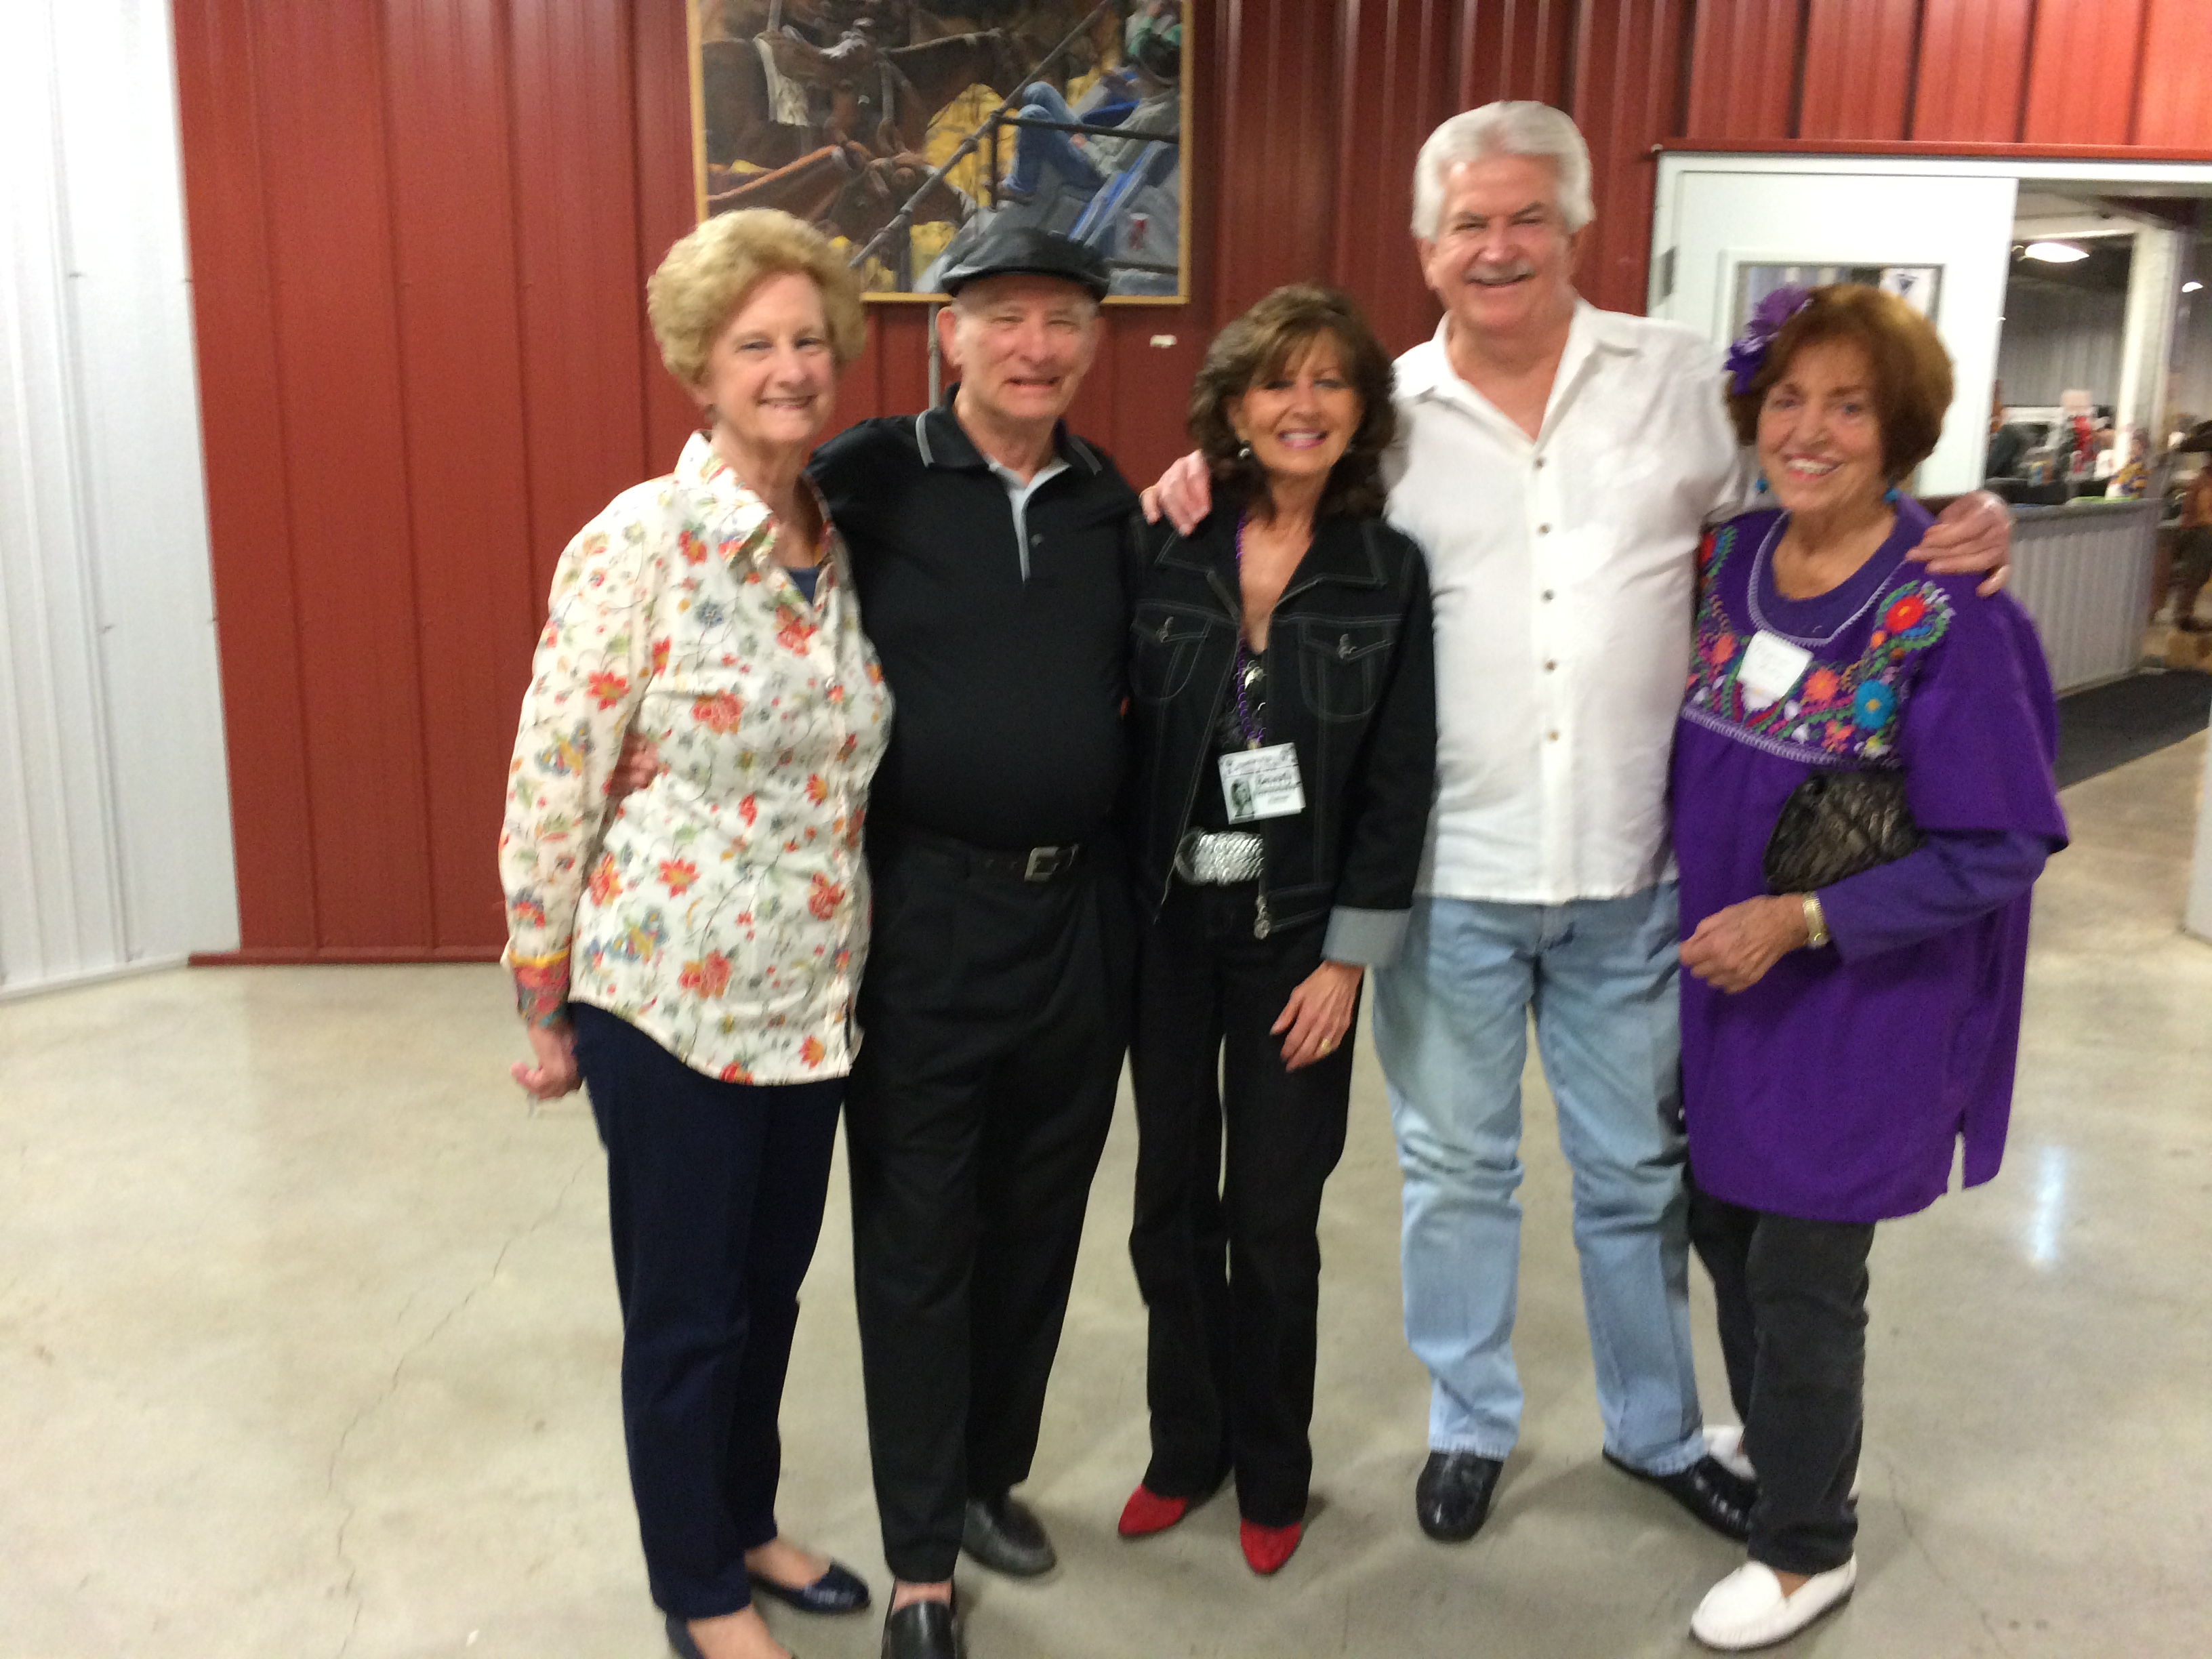 June Massengale Berry, Don Delp, Beverly Burmeister Hansen, Ken Dick, Marion Wiley Fersing